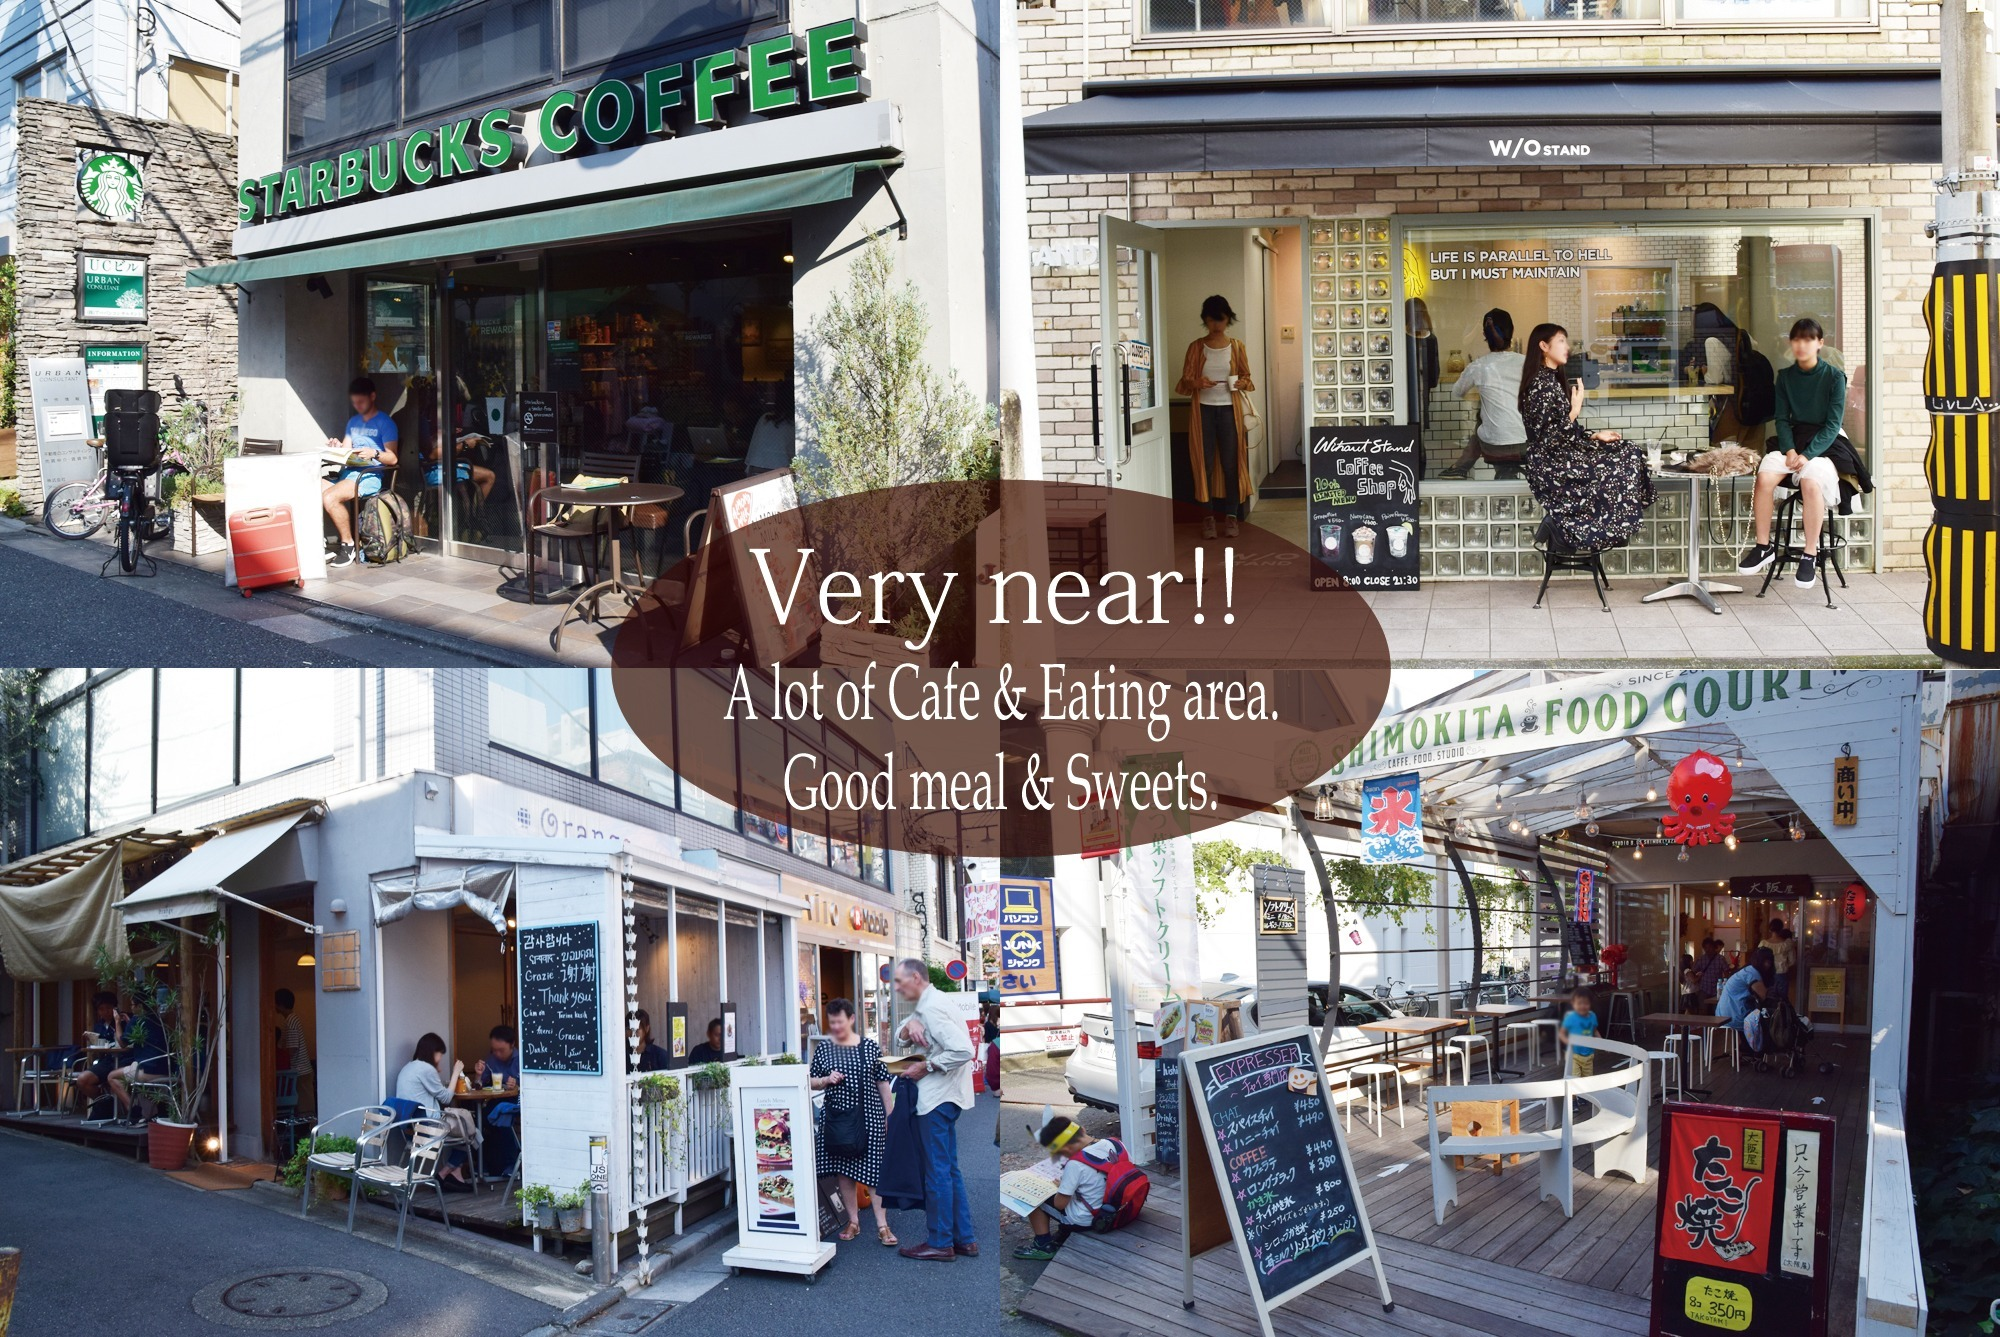 There are many coffee shops, cafes and sweets shops in the vicinity. Find your favorite! In front of the building is a popular coffee shop.